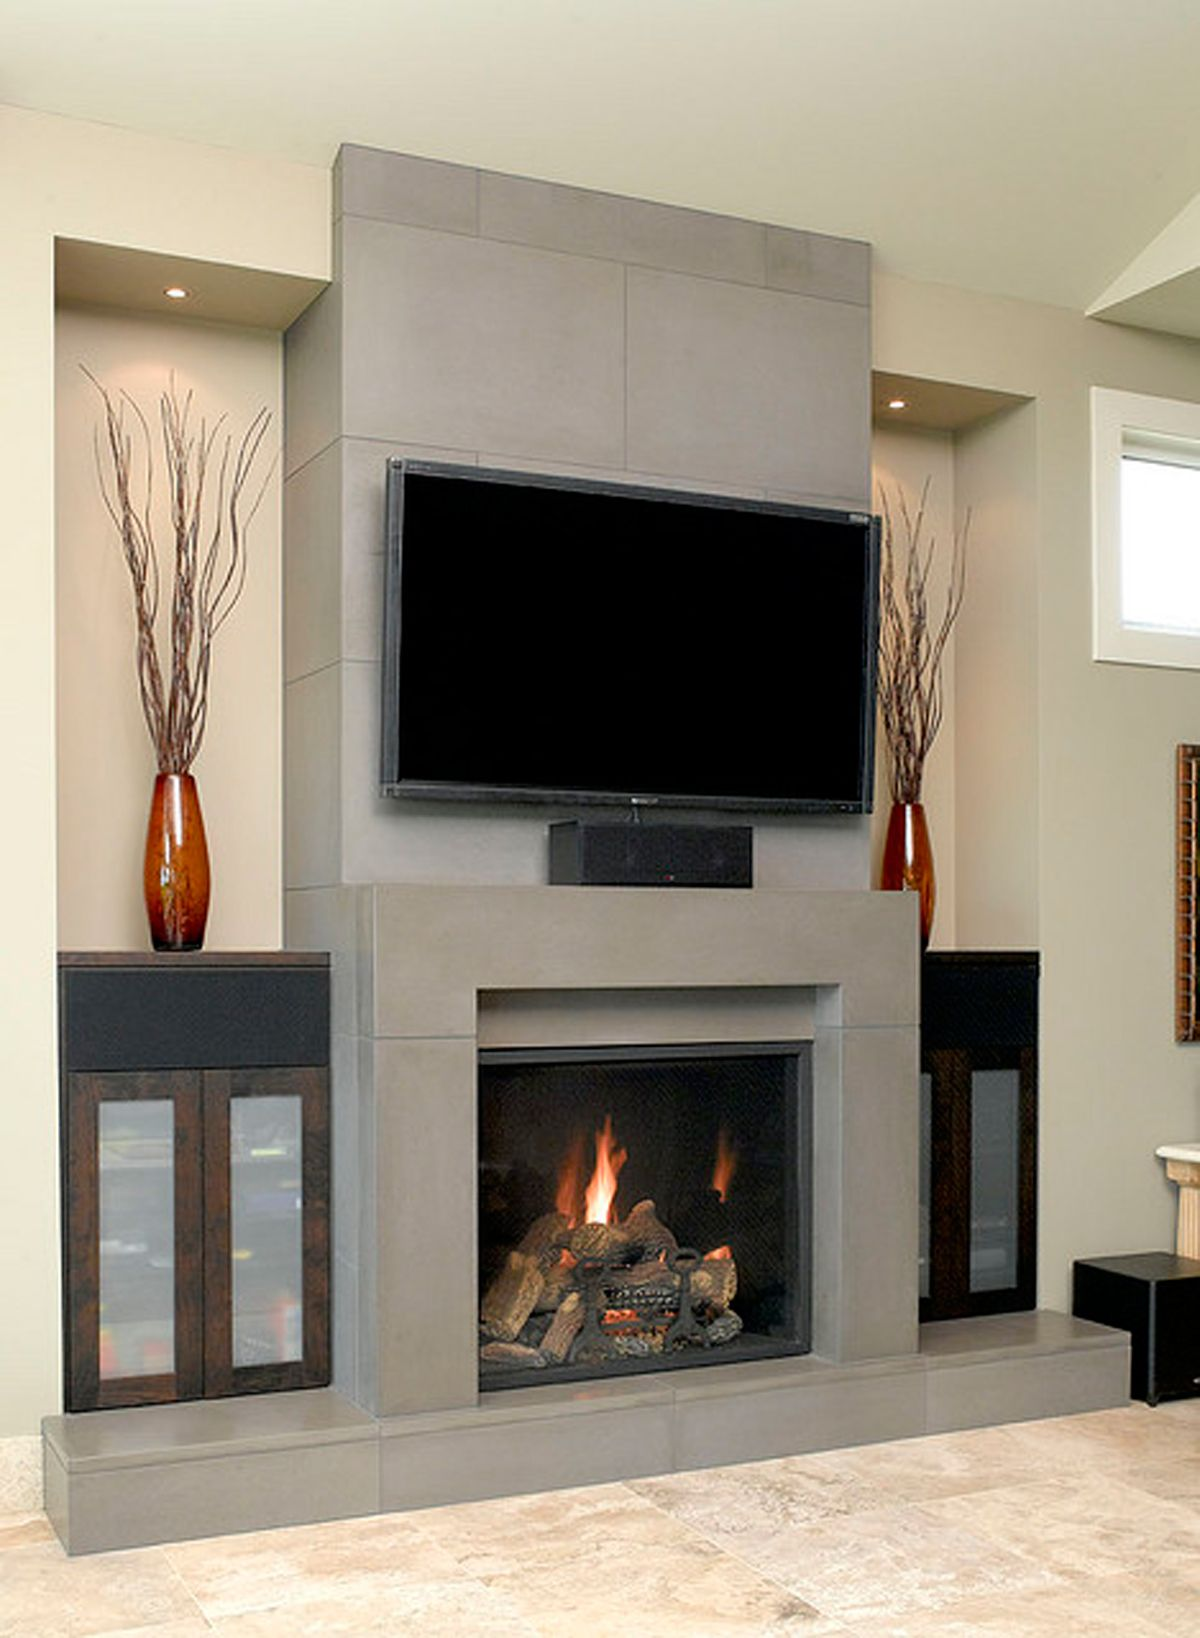 fireplaces designs  fireplace designs one of  total pics  - fireplaces designs  fireplace designs one of  total pics contemporary gasfireplace